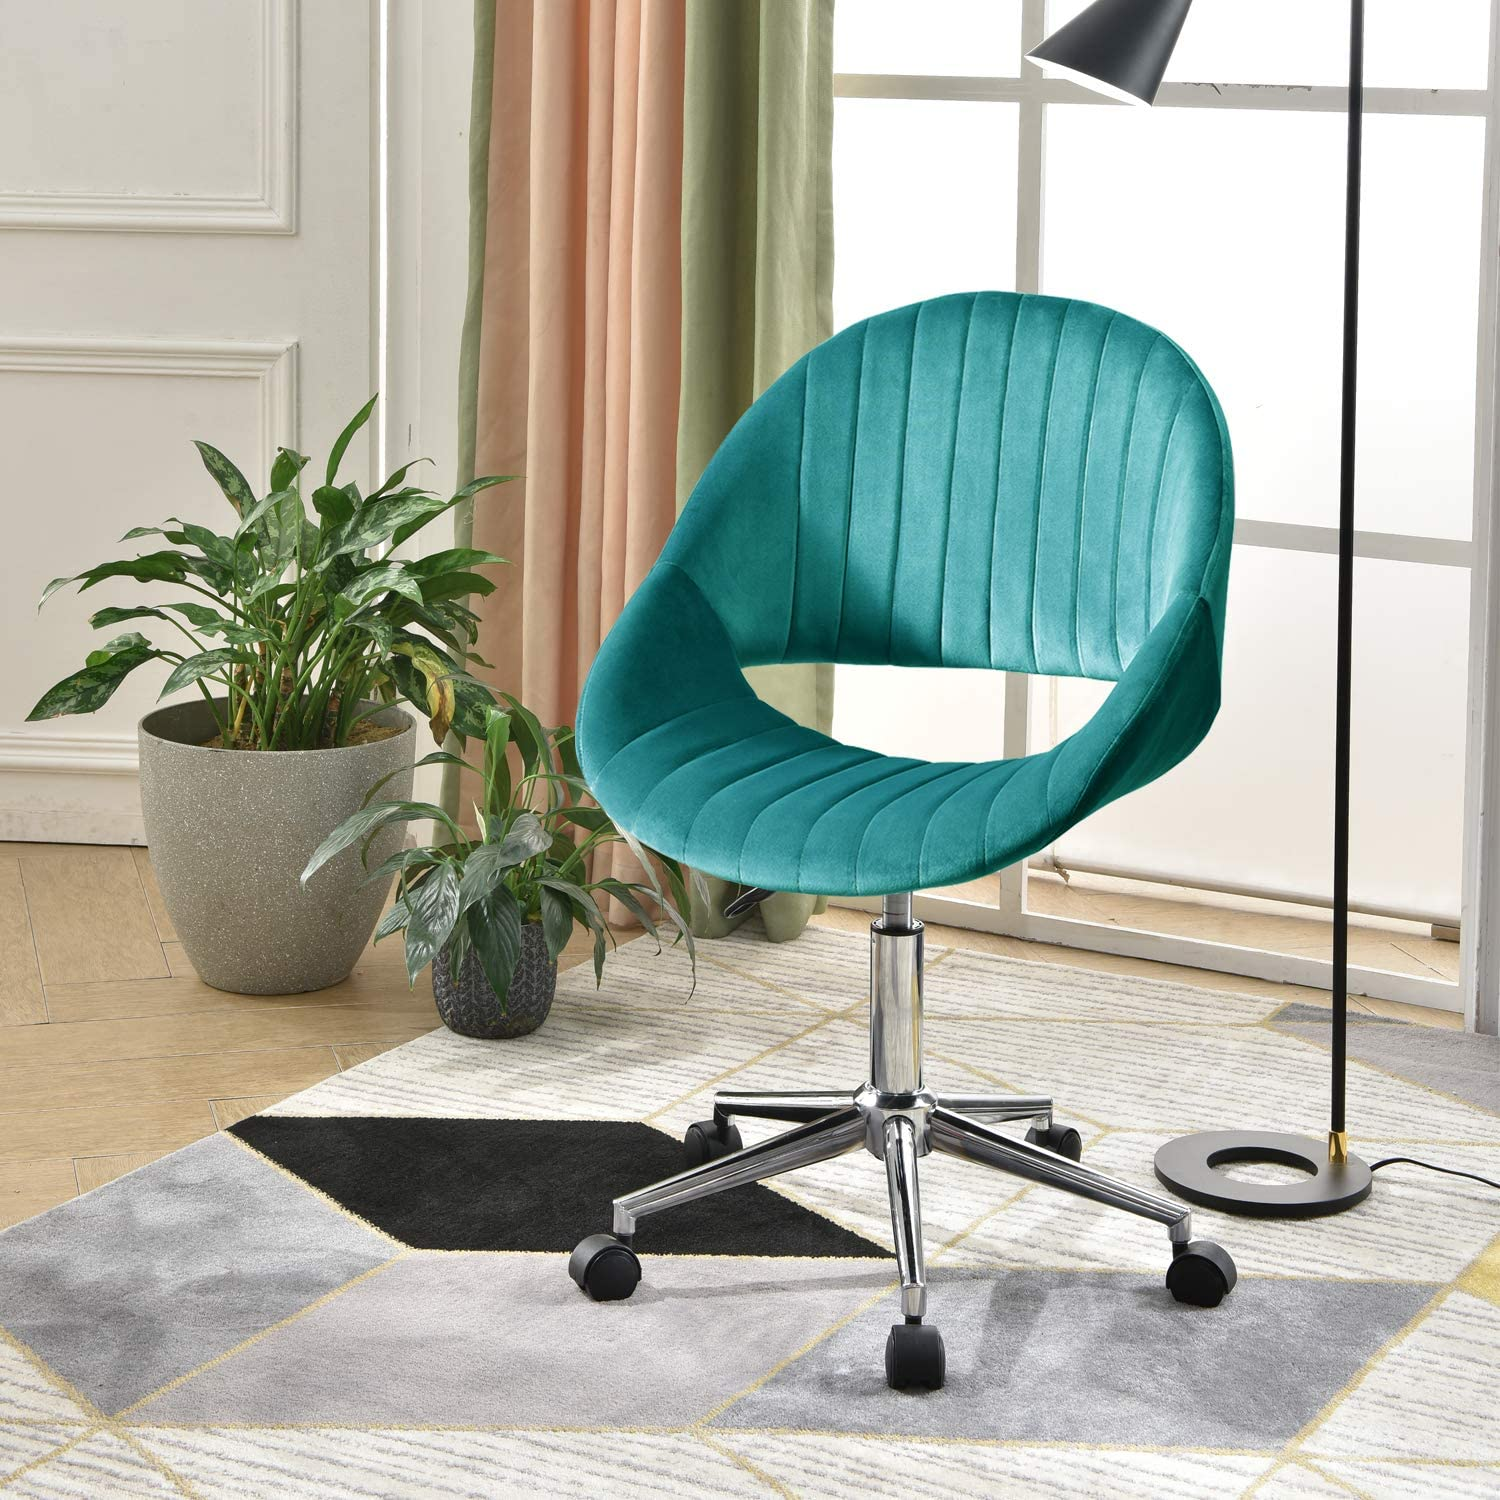 XIZZI Cute Desk Chair,Adjustable Swivel Office Chair for Girl, Velvet Chair with Wheels (Malachite Green-Chrome Frame)